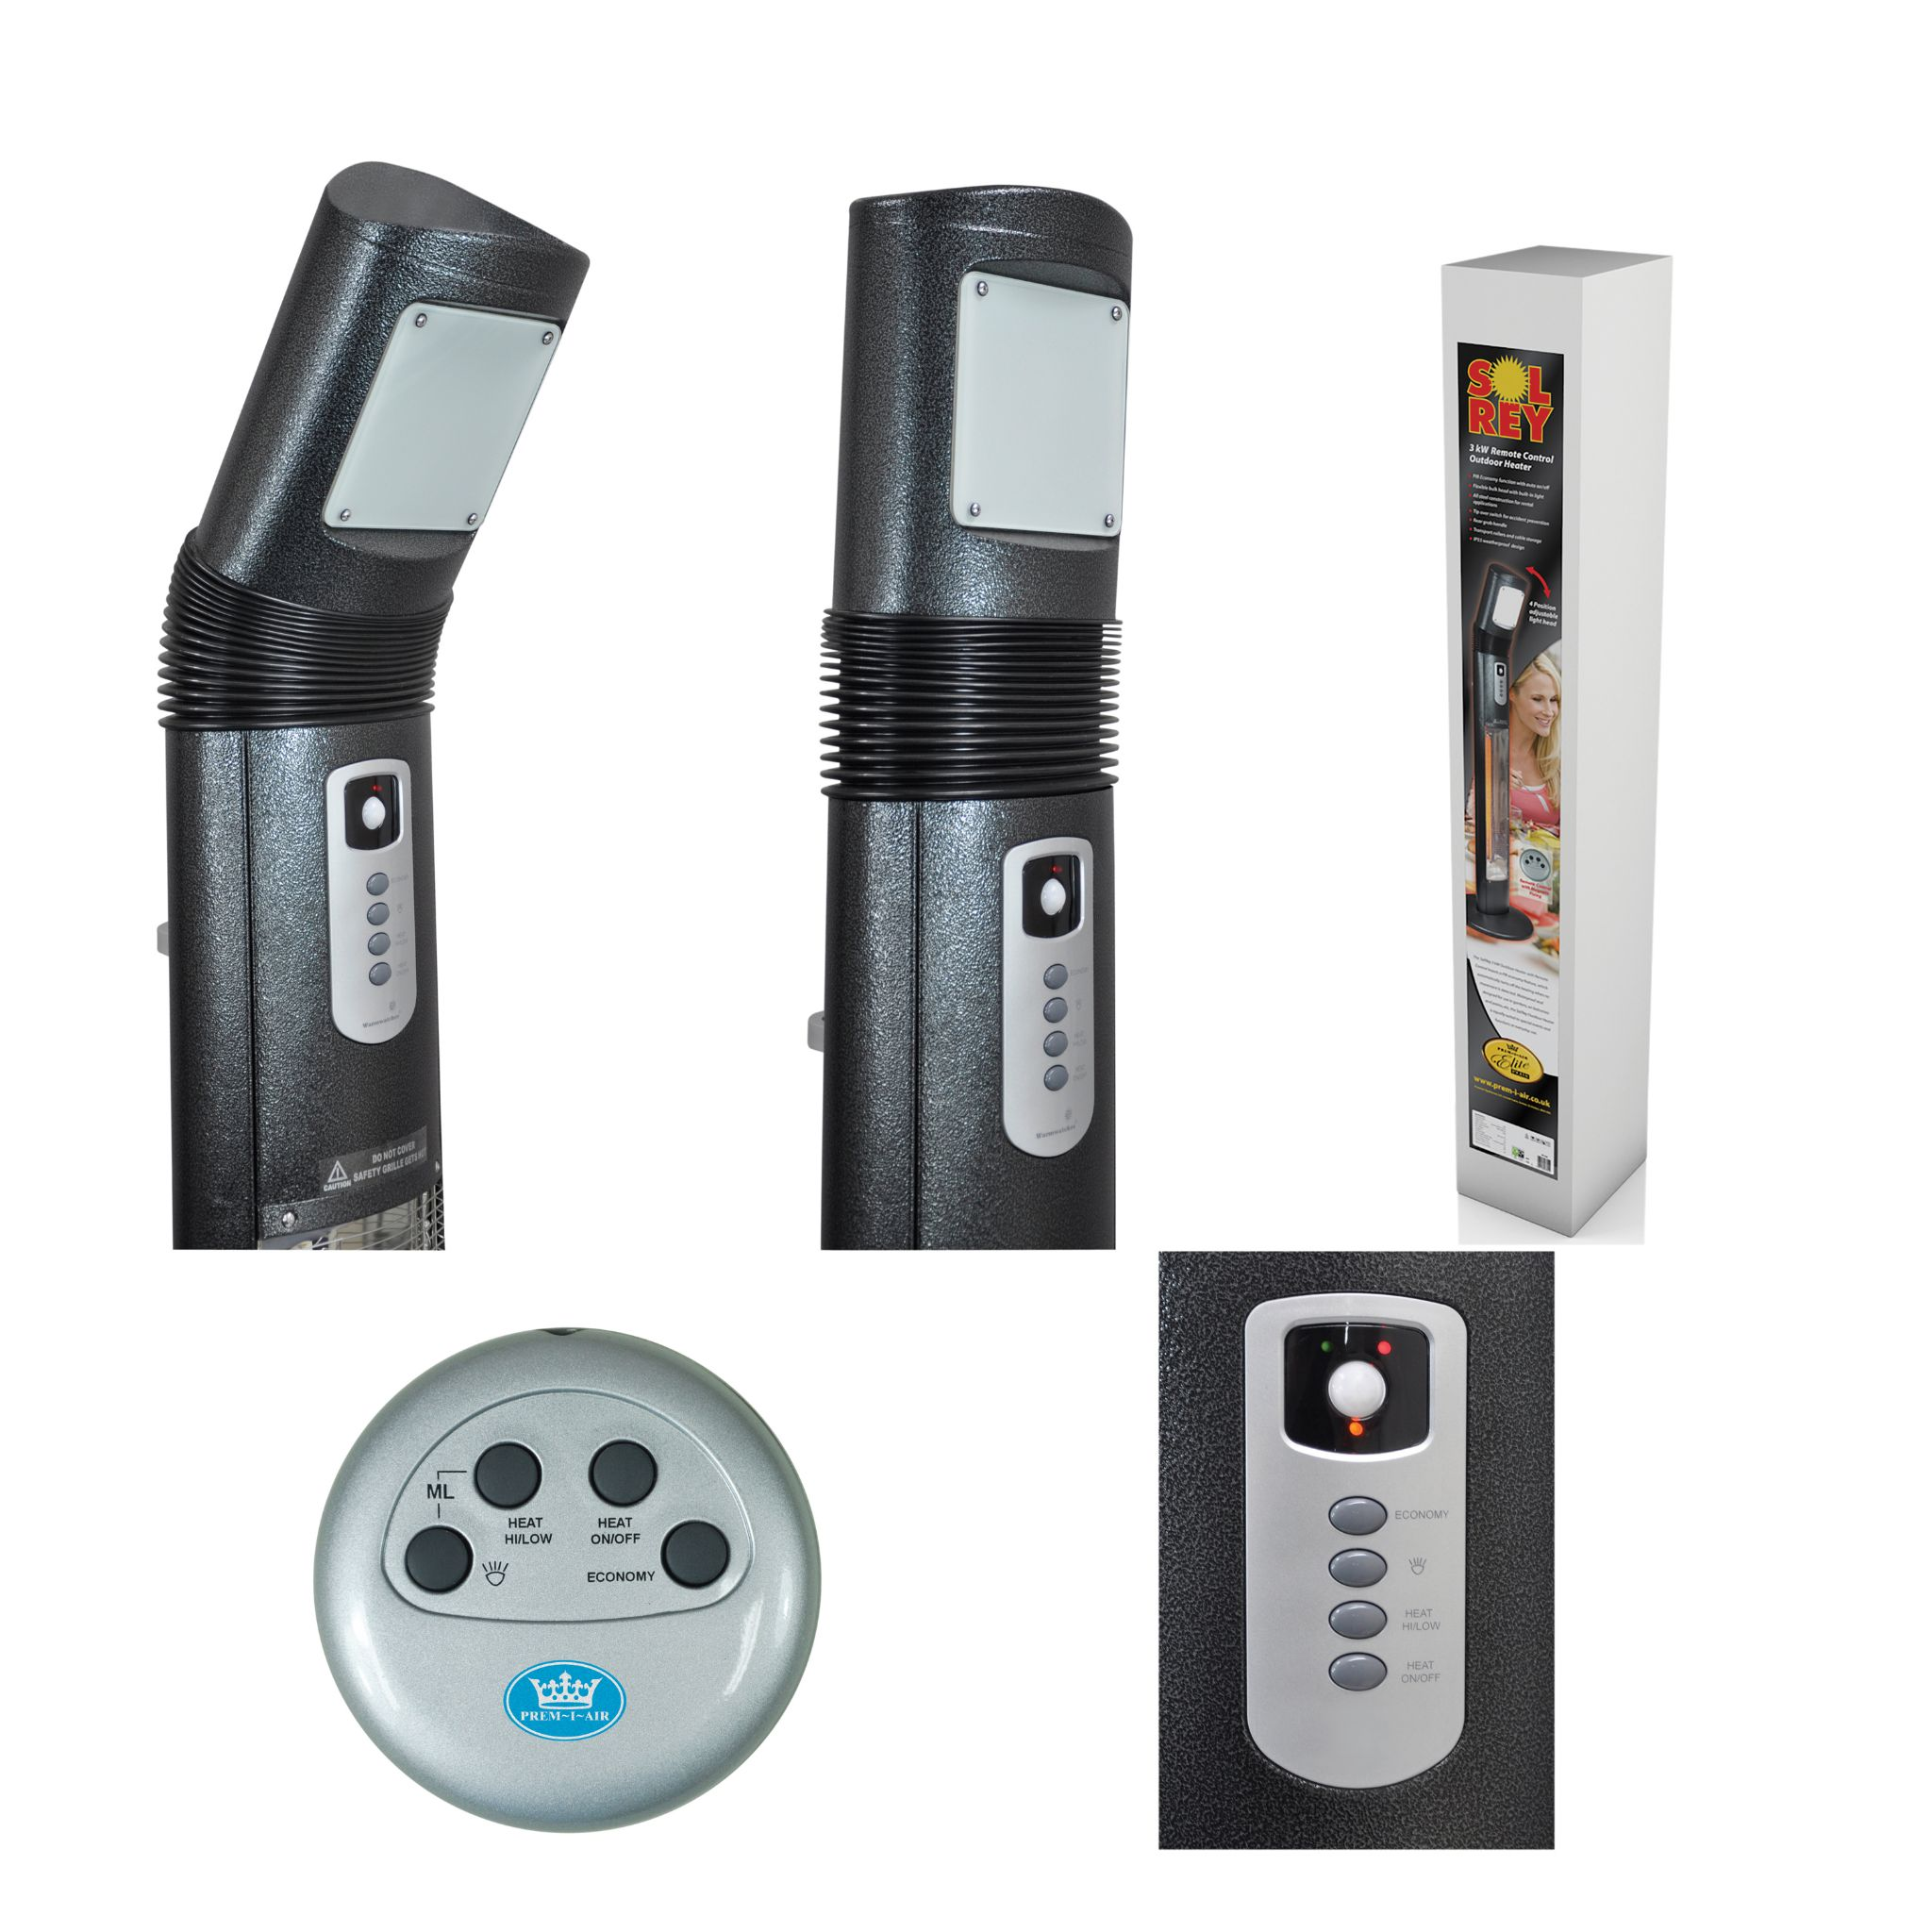 Sol Rey Carbon Fibre Electric Patio Heater With Remote Control 3kw Vehicles 1500w 240v Ceramic Element 12000 Btu